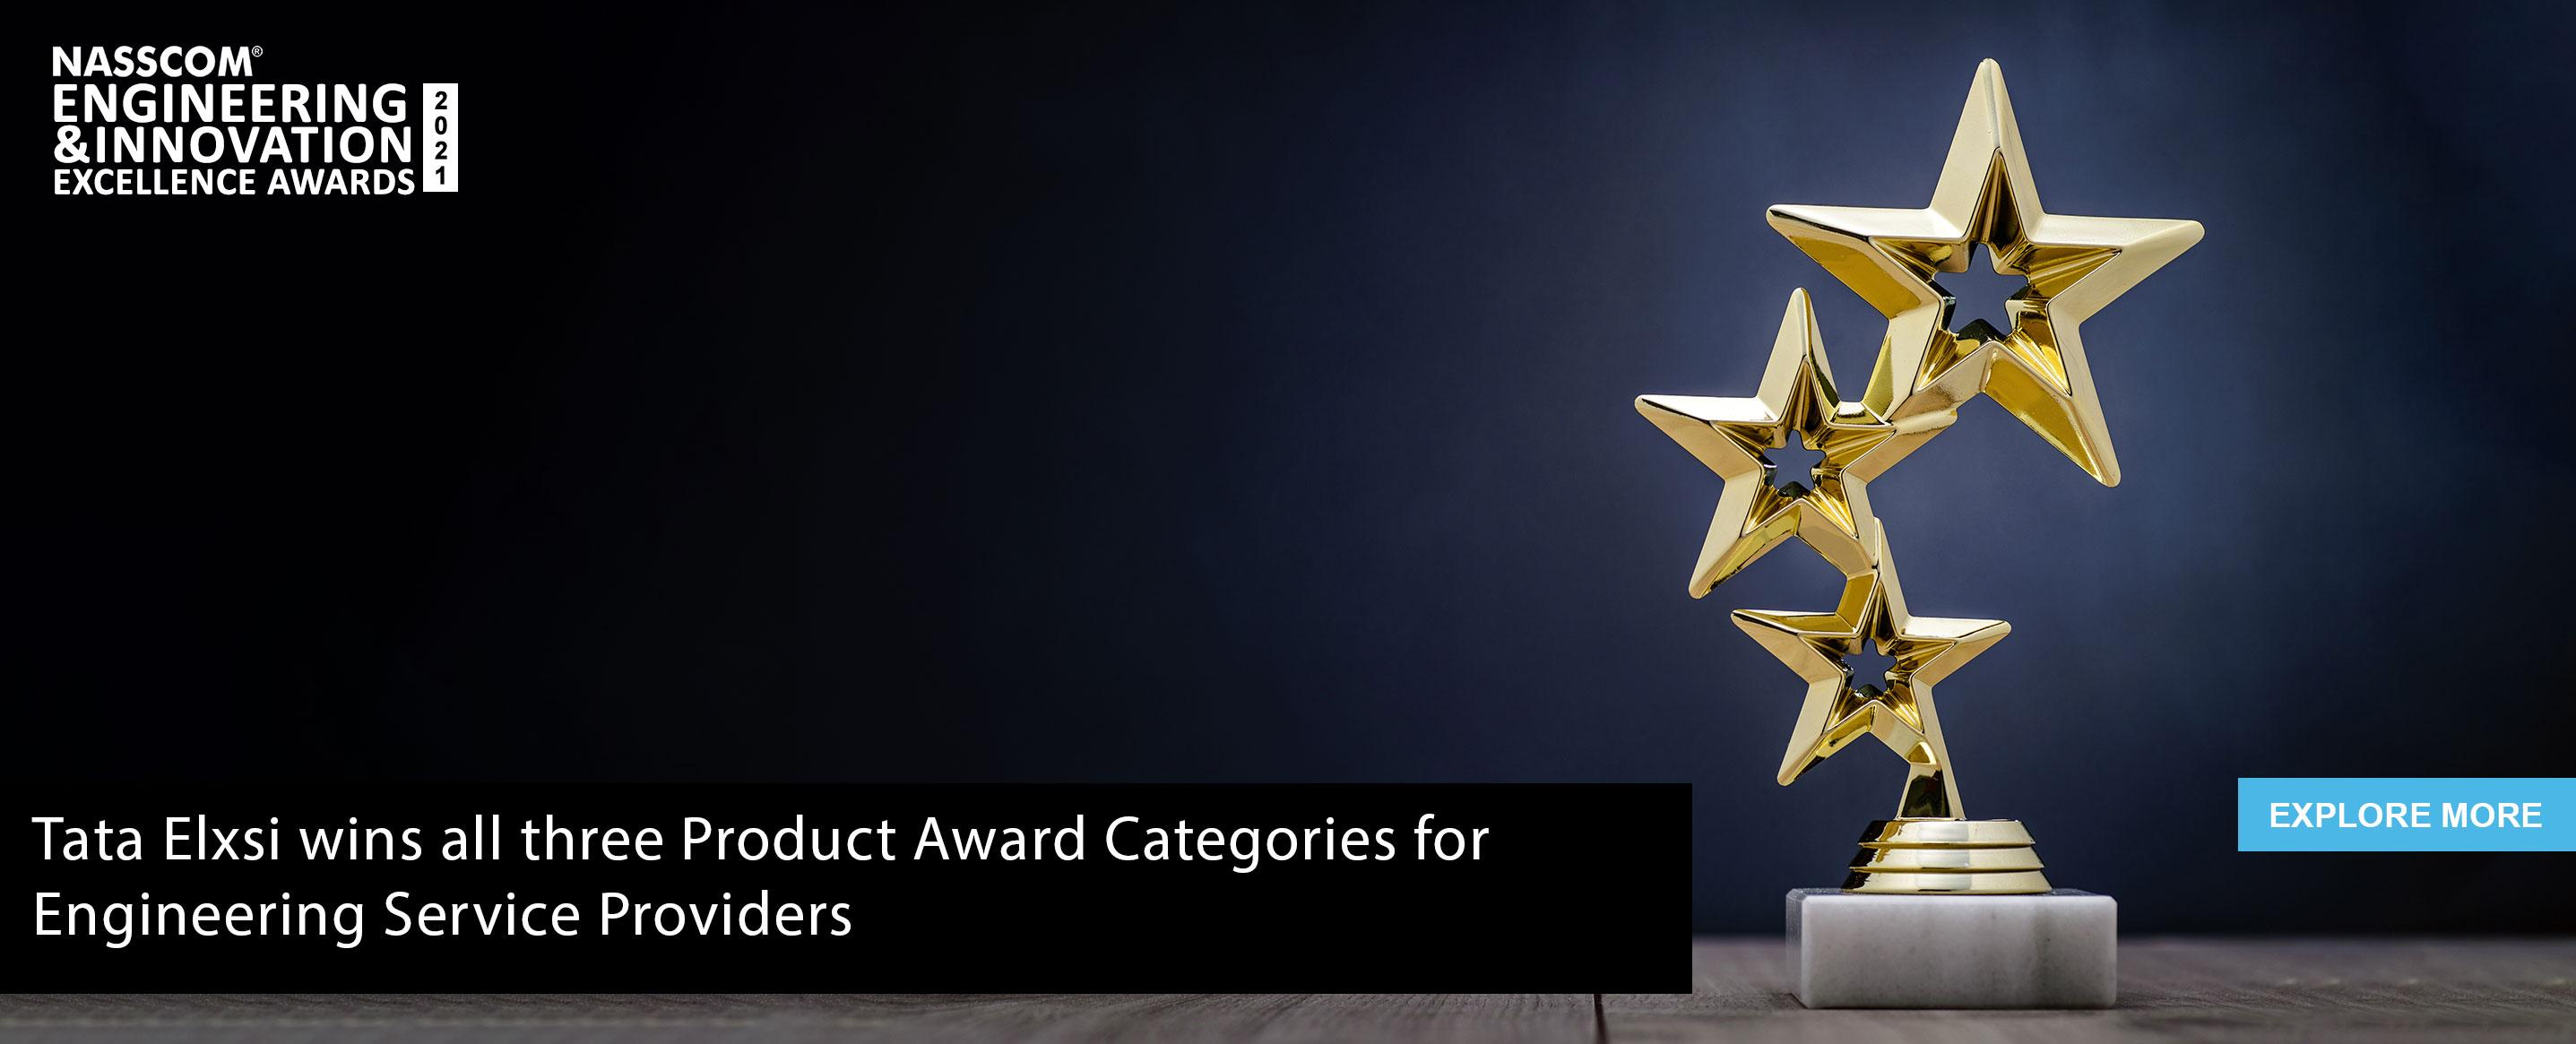 Tata Elxsi wins all three Product Award Categories for Engineering Service Providers at the NASSCOM Engineering & Innovation Excellence Awards 2021